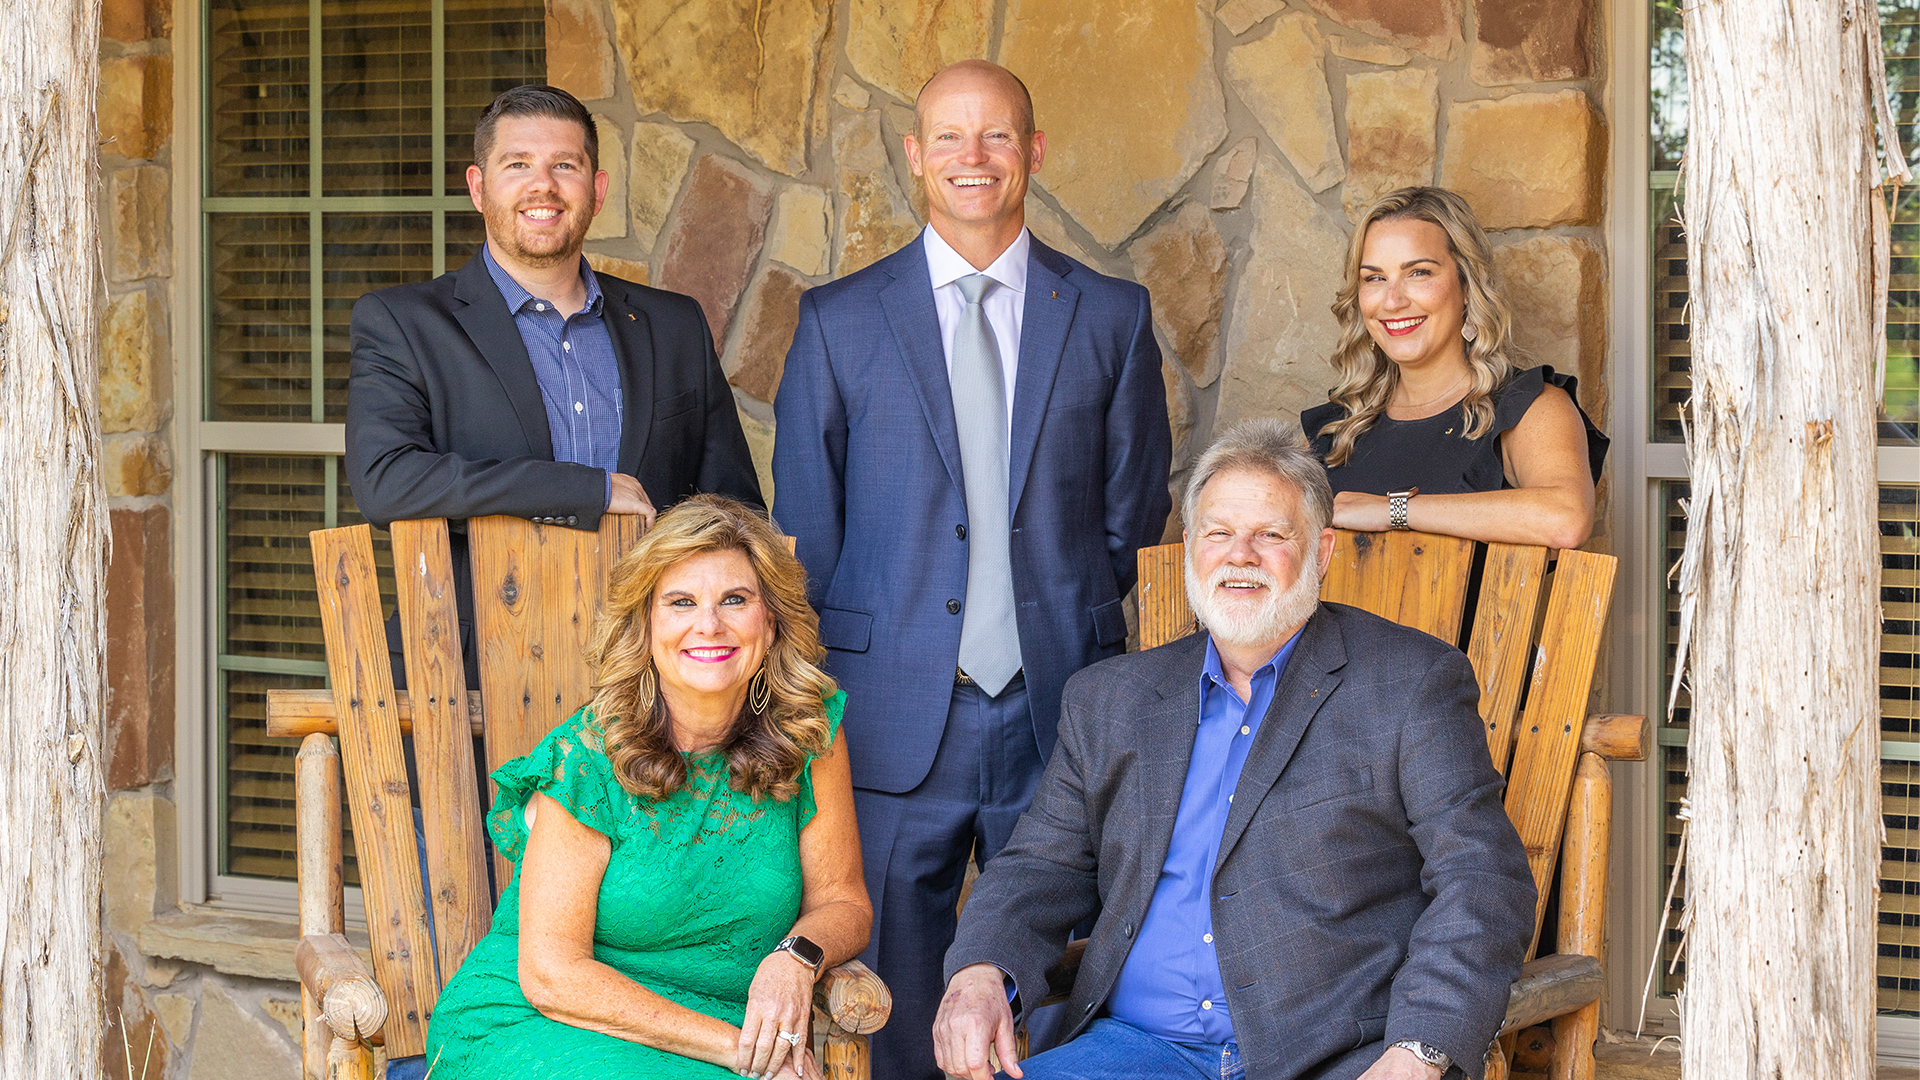 Nationally Recognized Insurance Leader Senior Security Benefits Joins Forces with Integrity